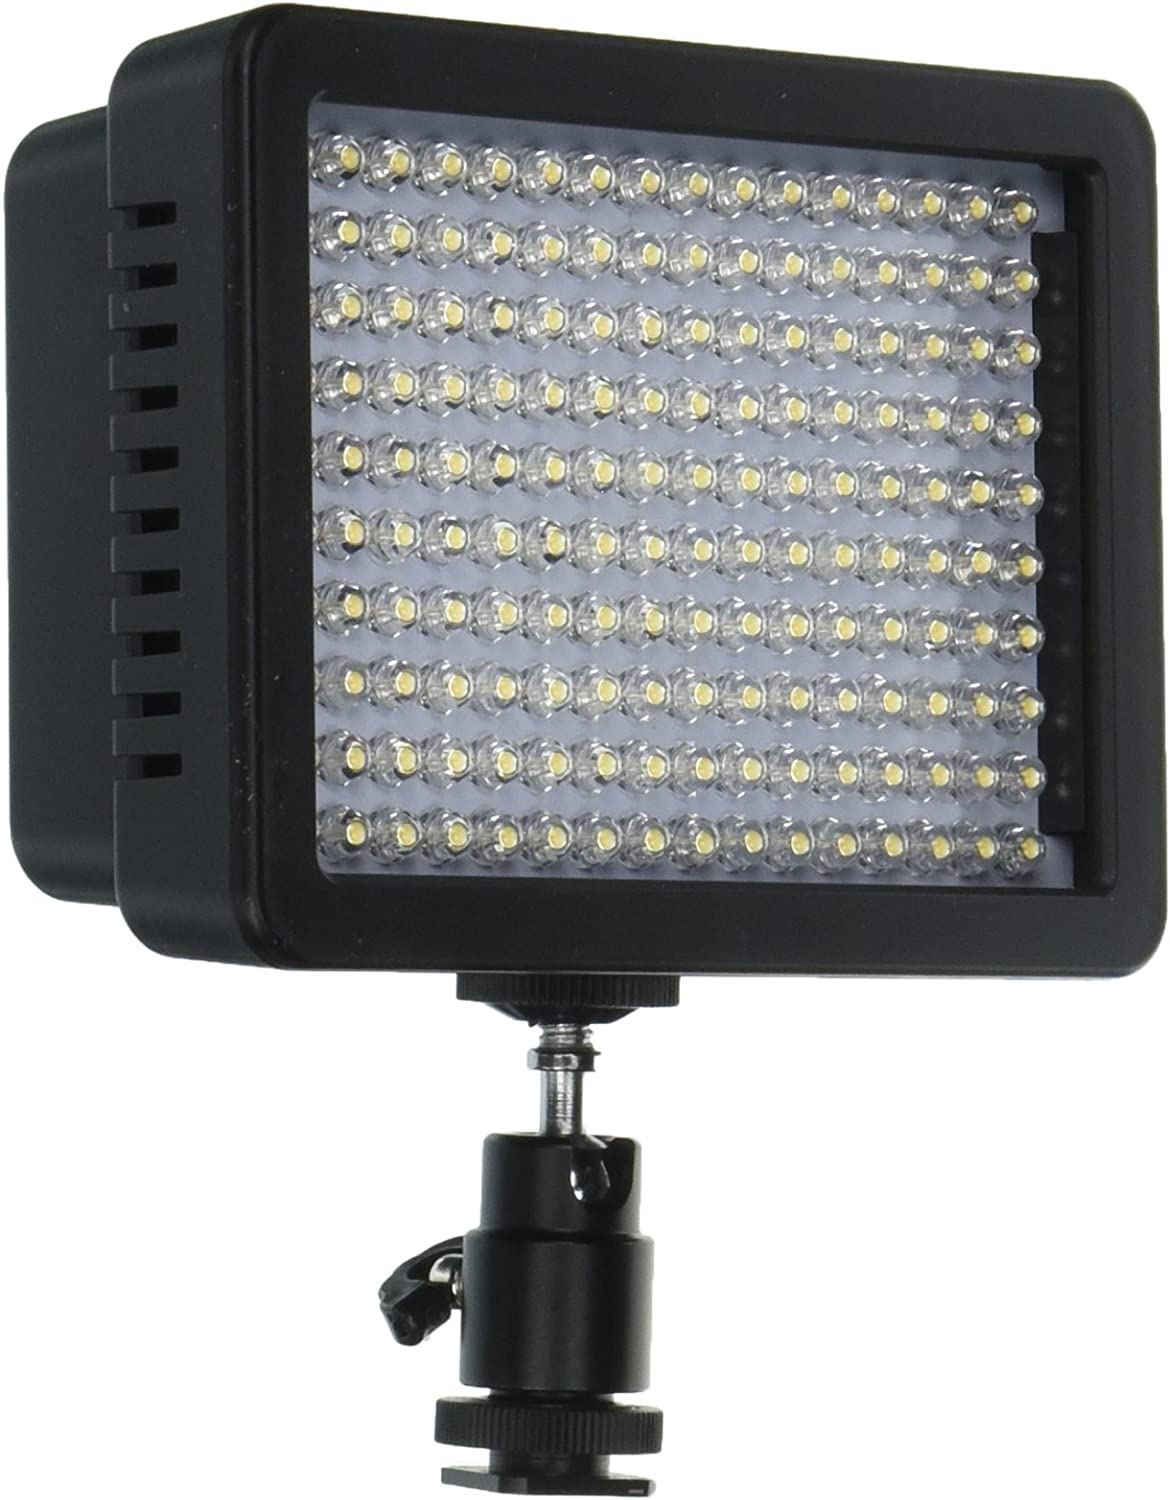 Nikon Olympus Pentax DSLR and Camcorders Bestlight Ultra High Power 160 LED Video Light Panel with Shoe Adapter for Canon